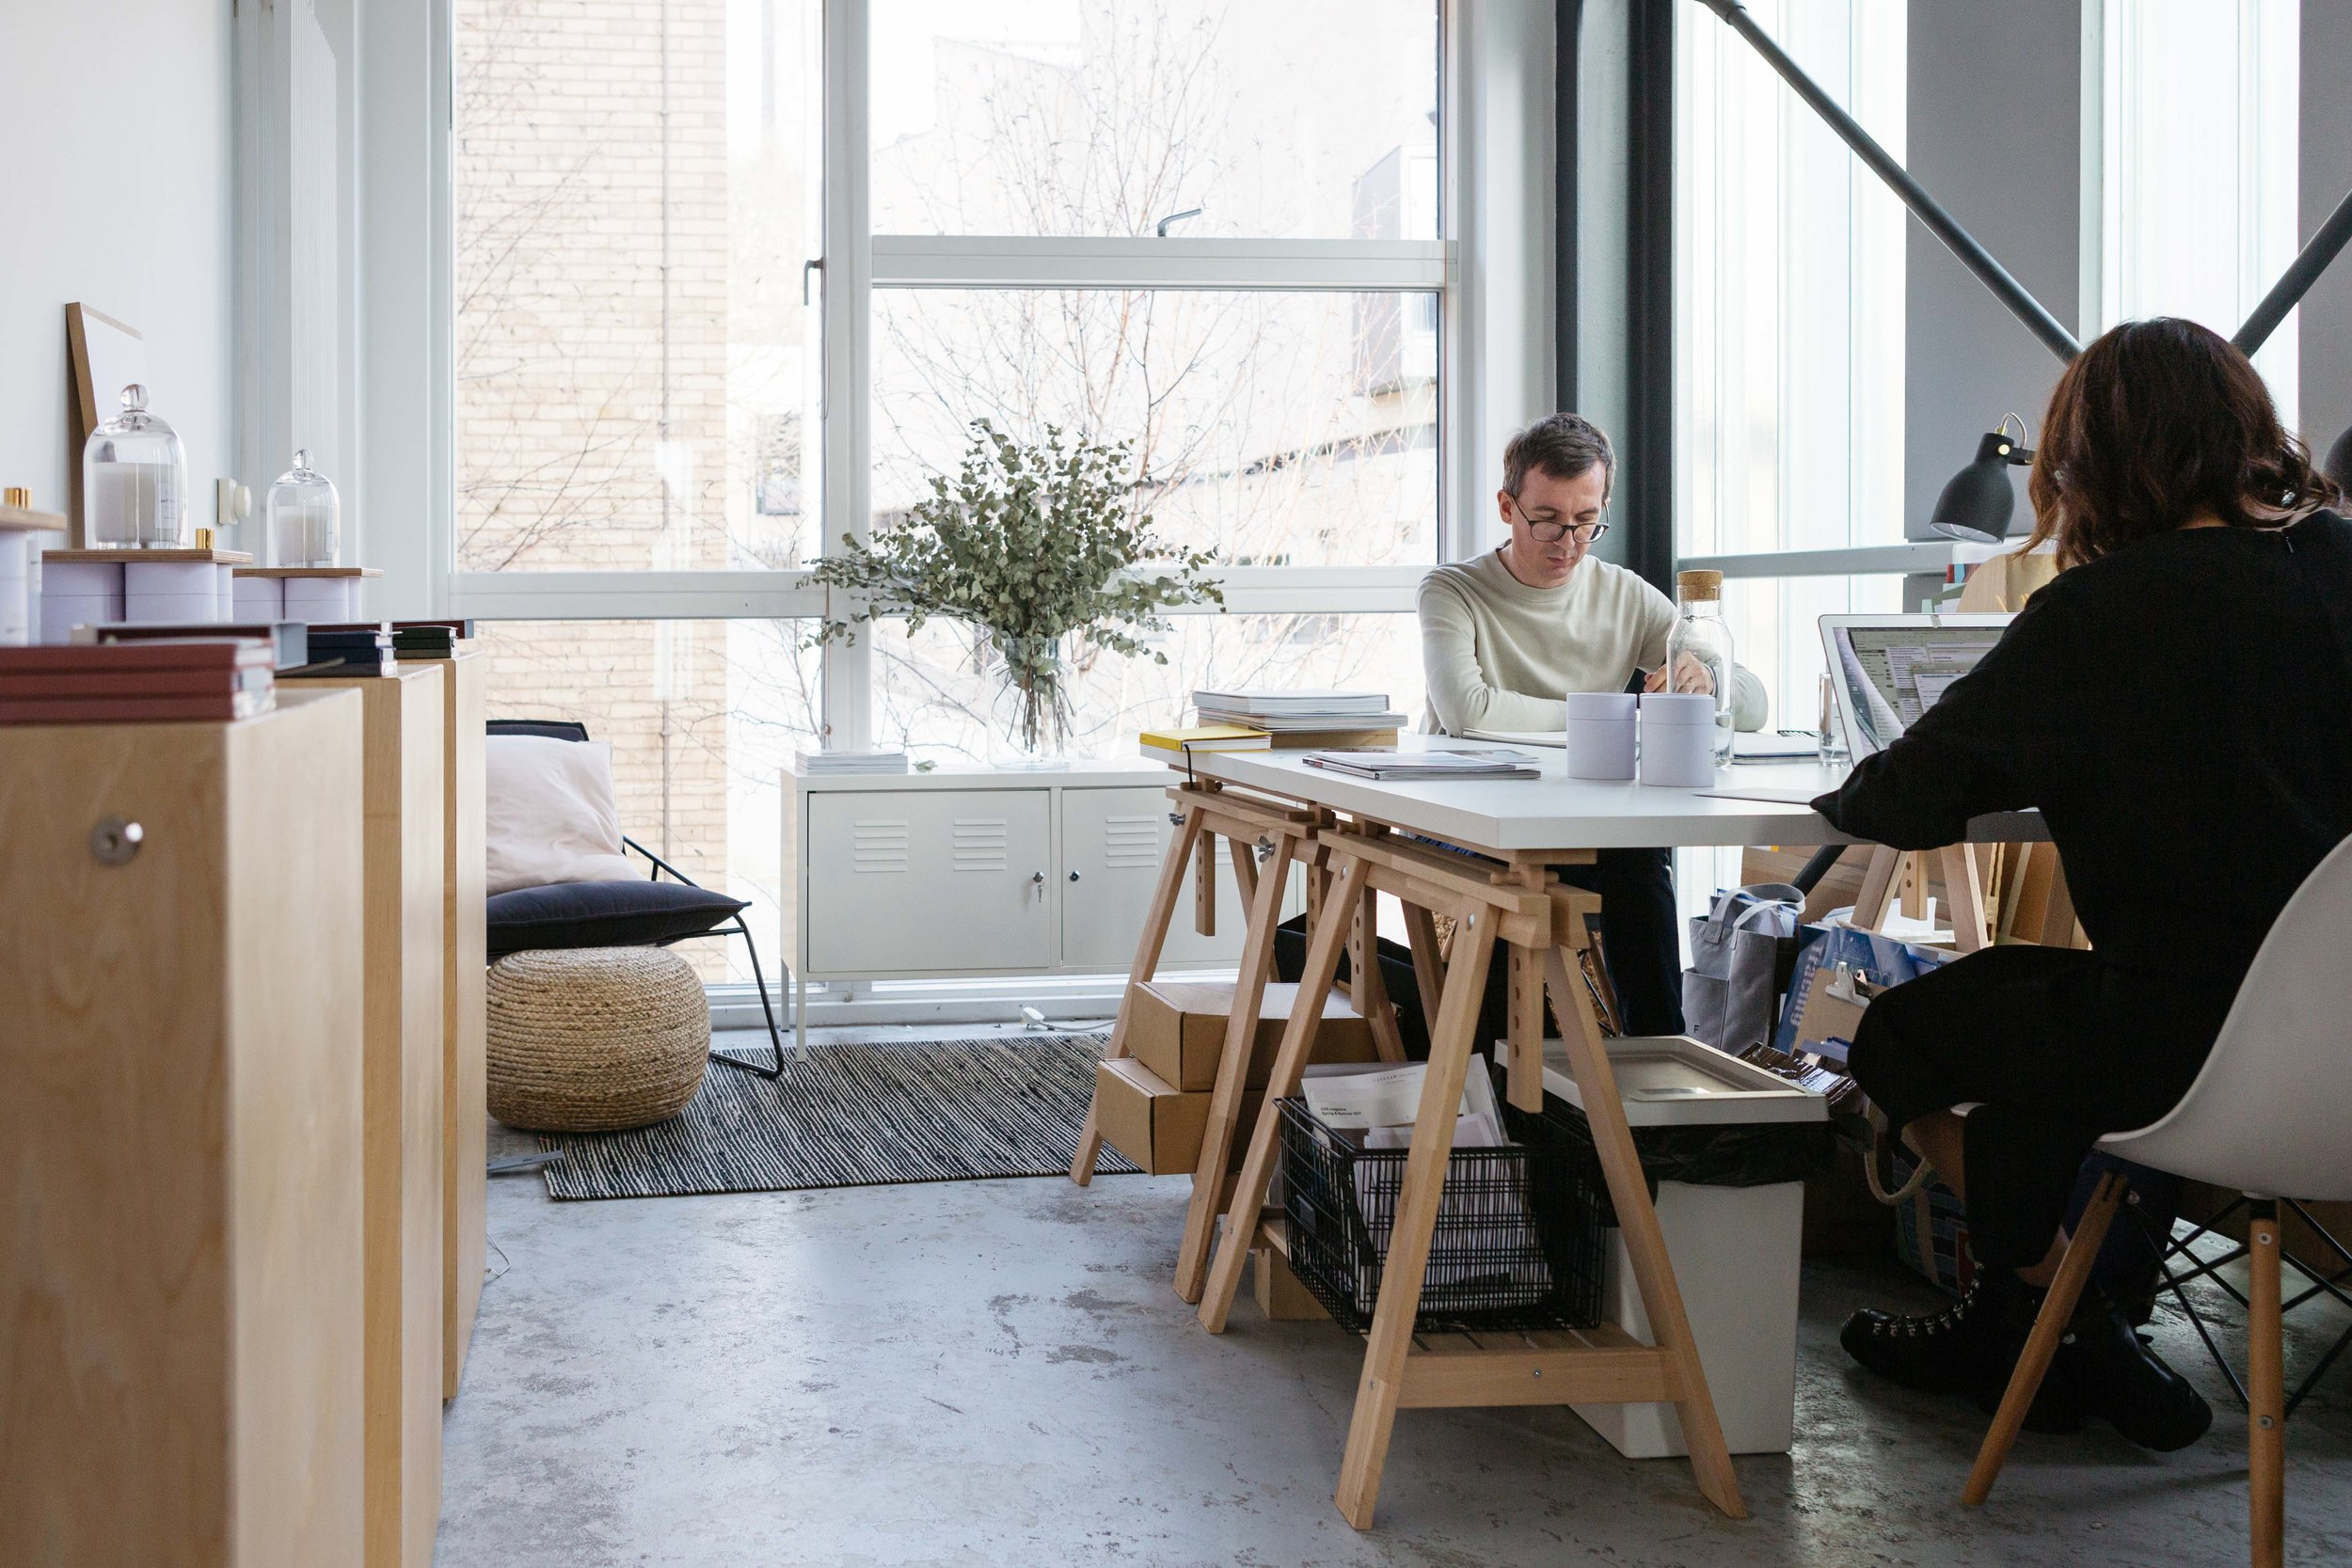 The Moments of Sense & Style, Lincoln, studio. Image of the co-founders Syreeta and Rob working at their desks. Image by Natasha Boyes Photography